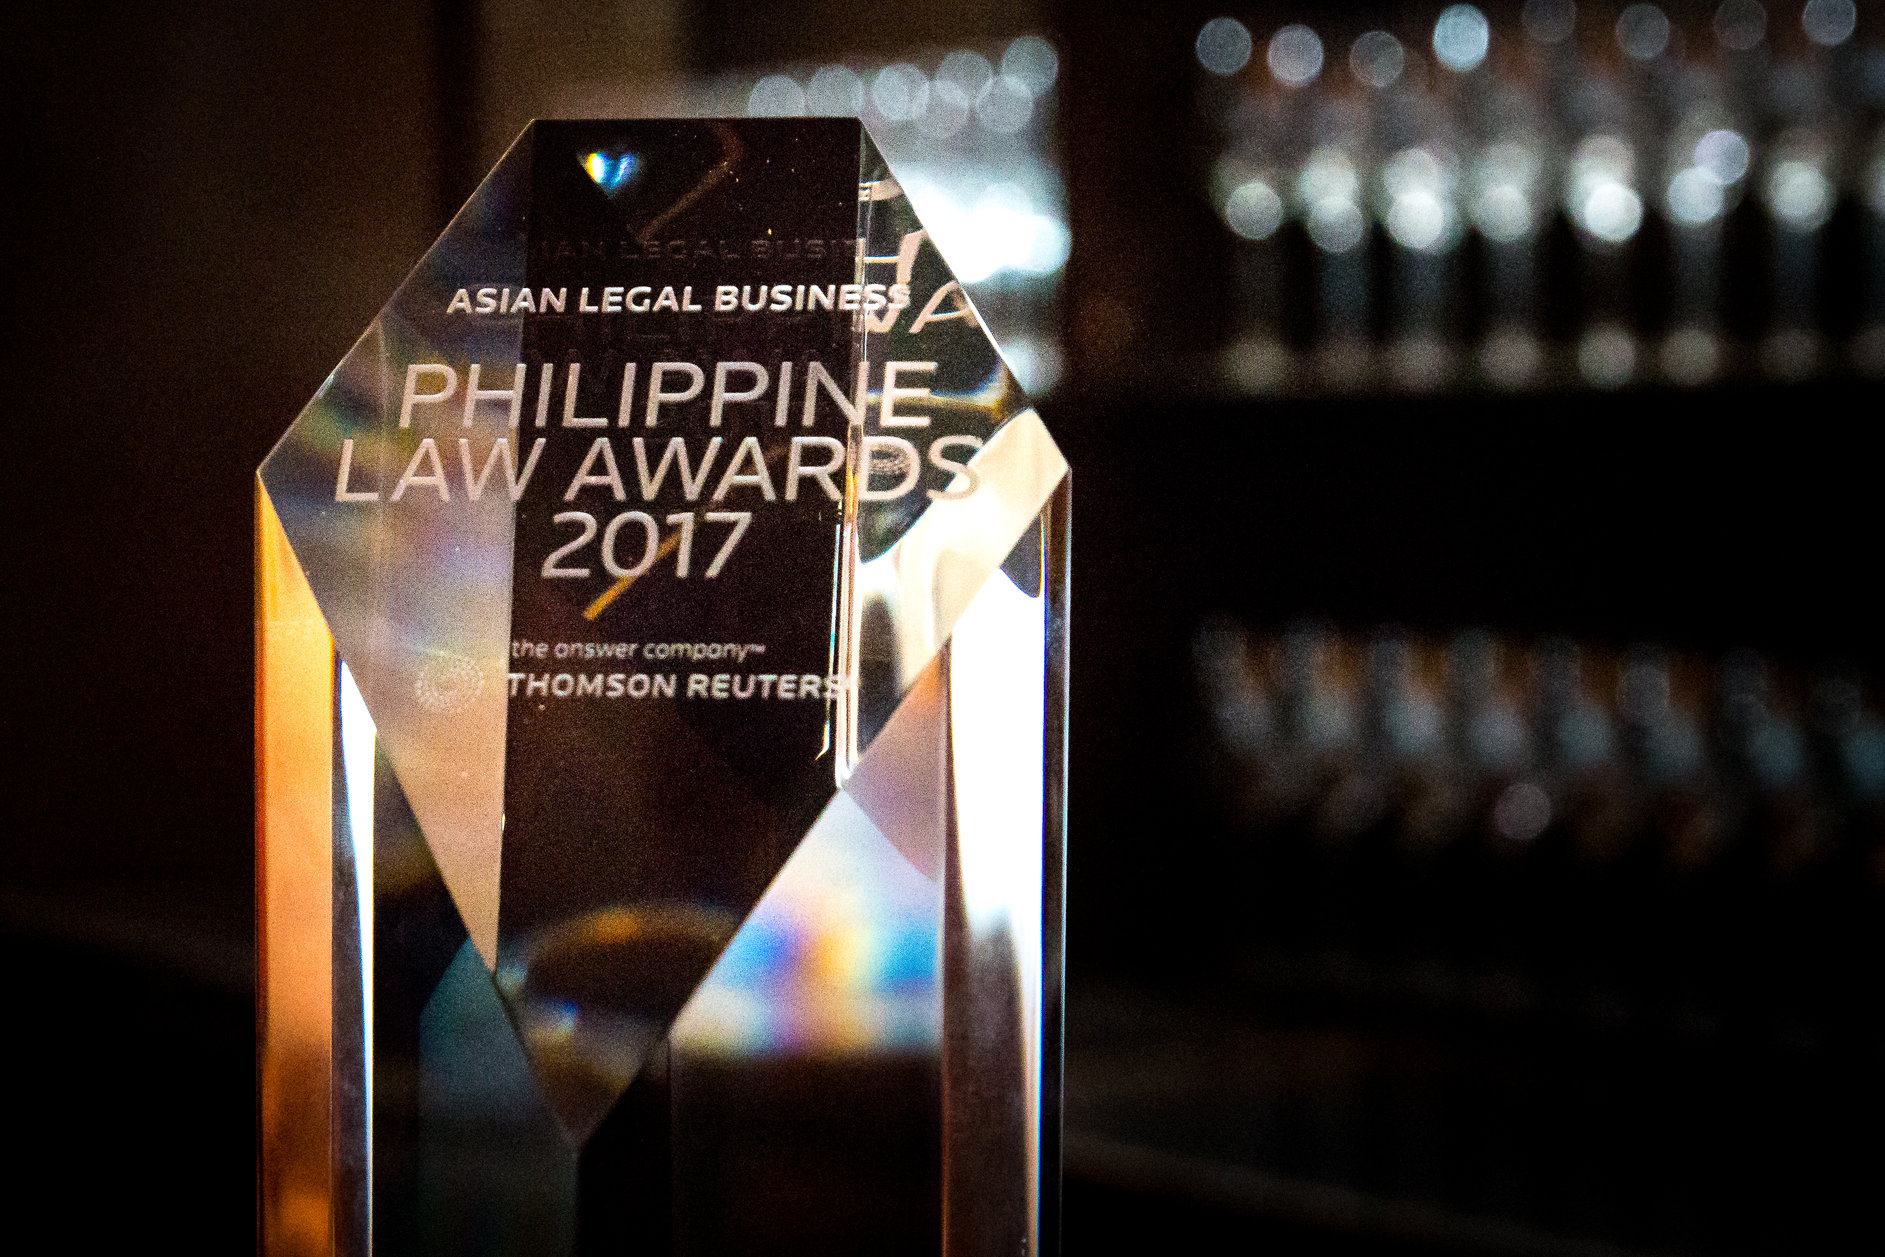 ALB Philippine Law Awards 2017 | Asian Legal Business